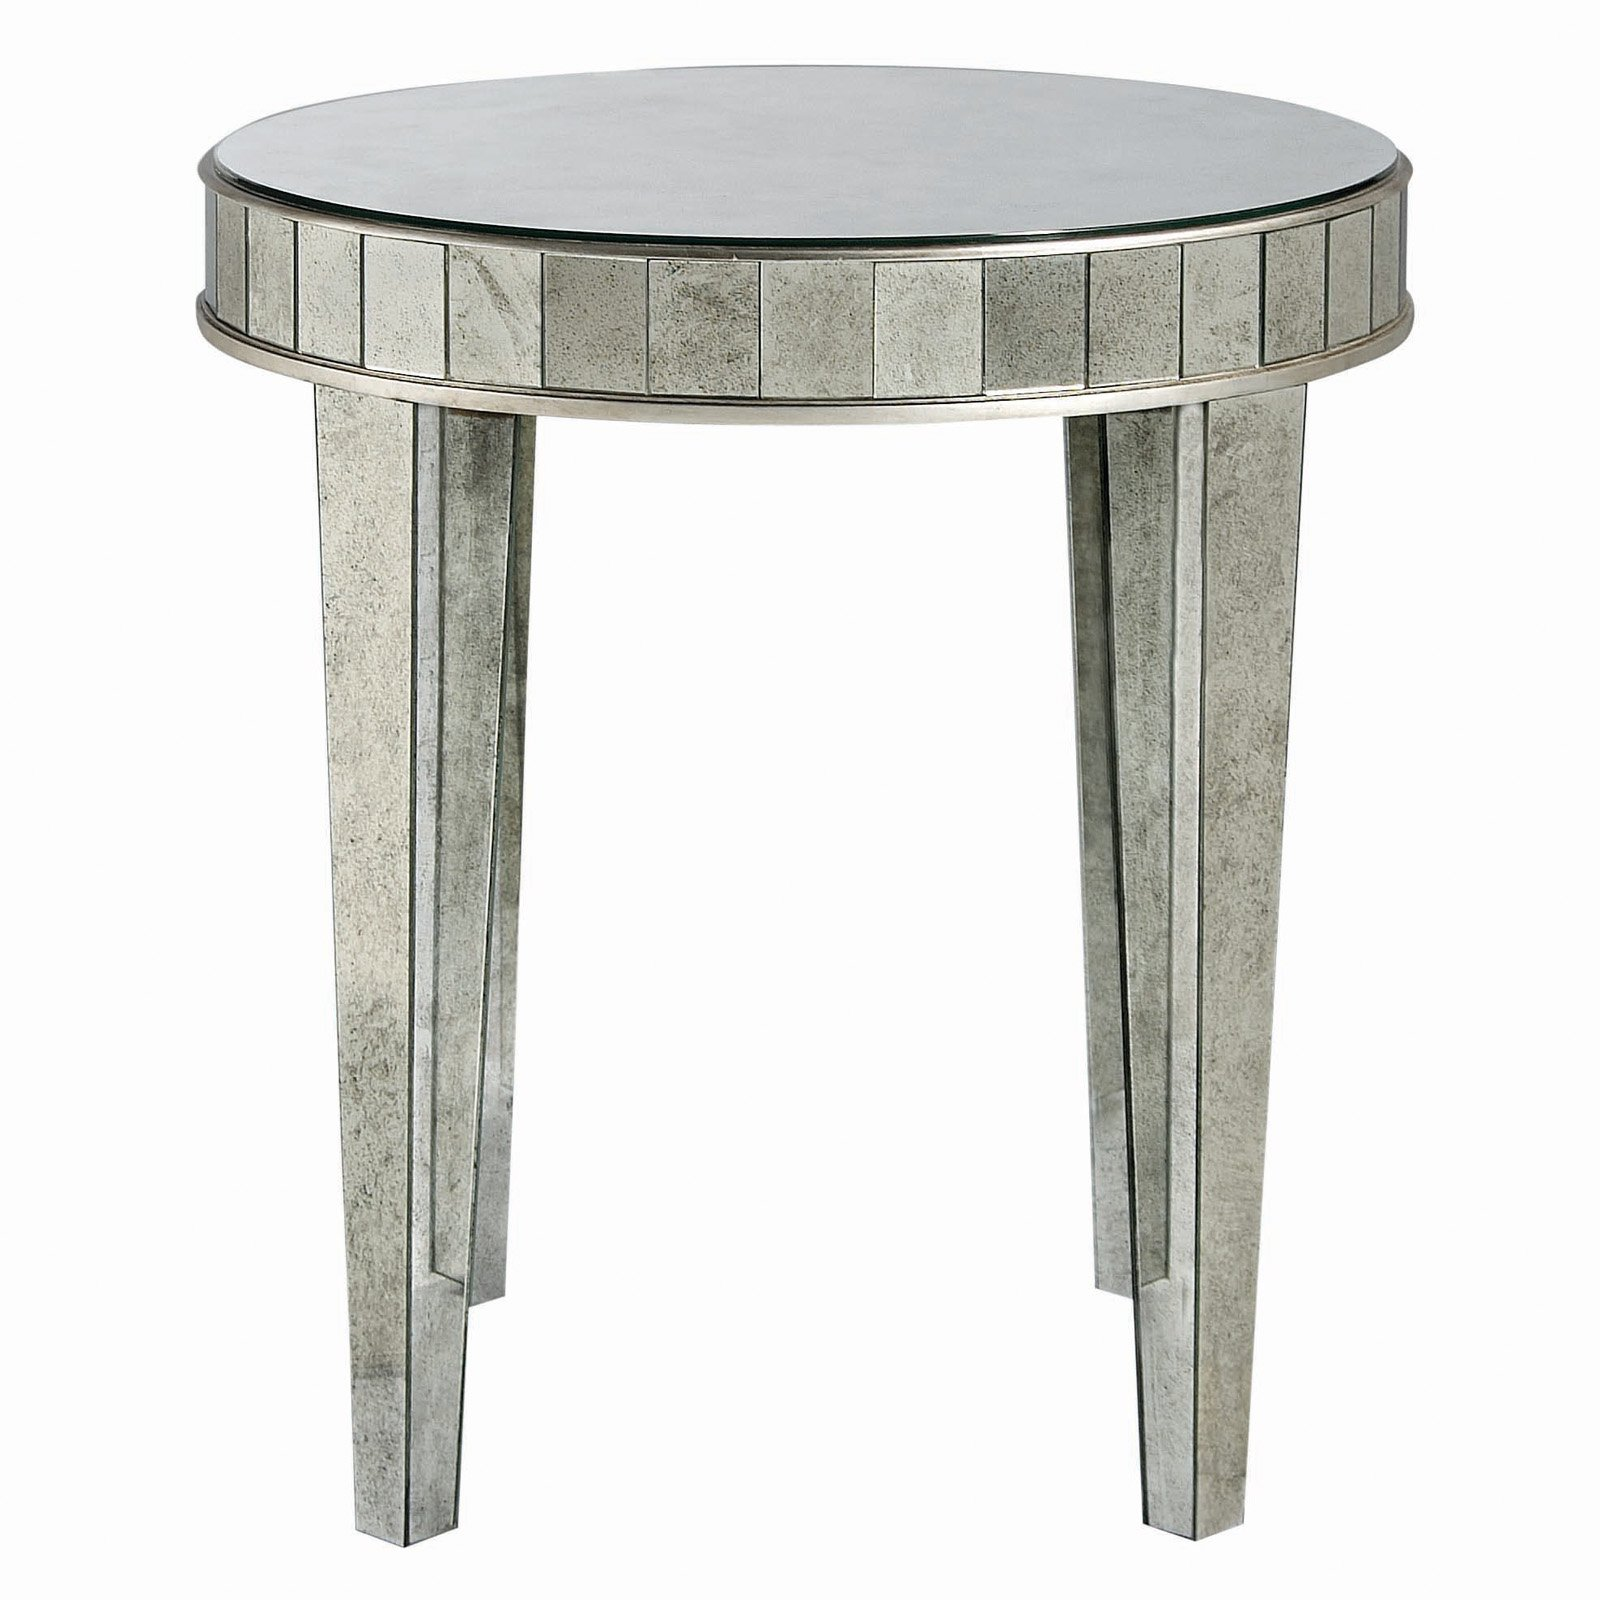 awesome mirrored accent table with round designs metal mirror red ikea small storage craftsman style lighting target dining room contemporary coffee decor plastic patio side inch